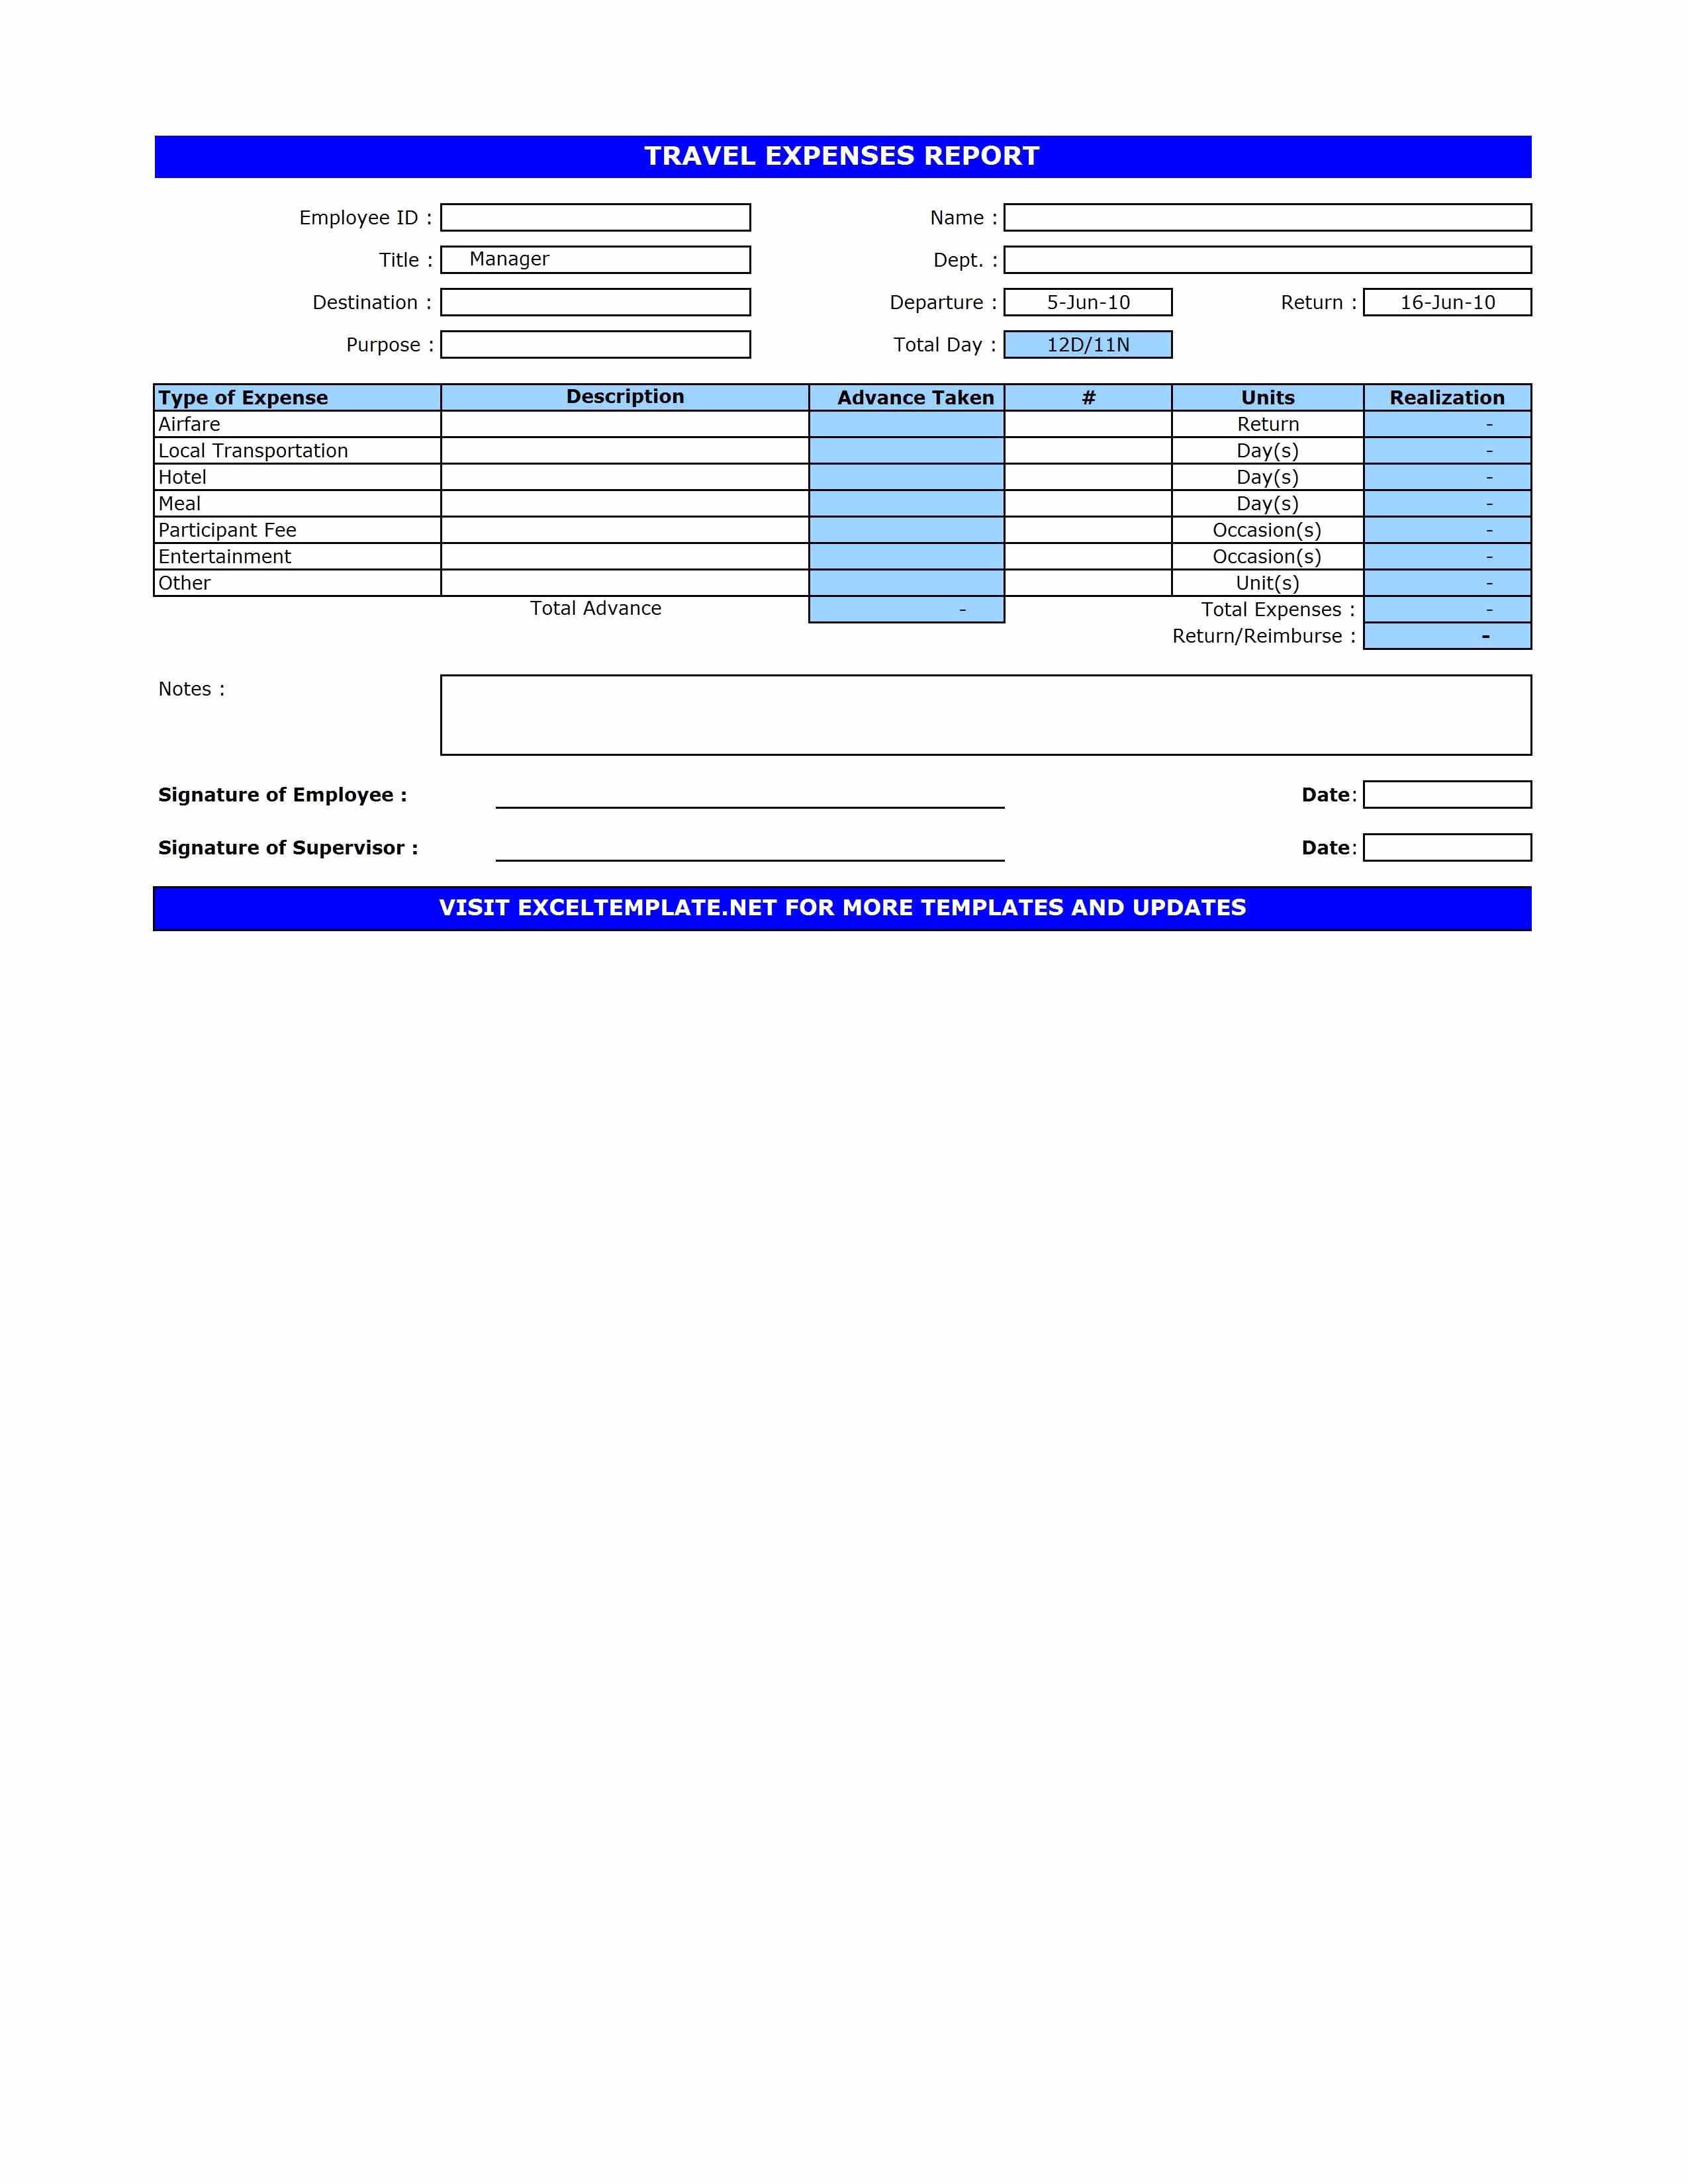 Excel Travel Expense Report Template Beautiful Travel Expenses Report Template